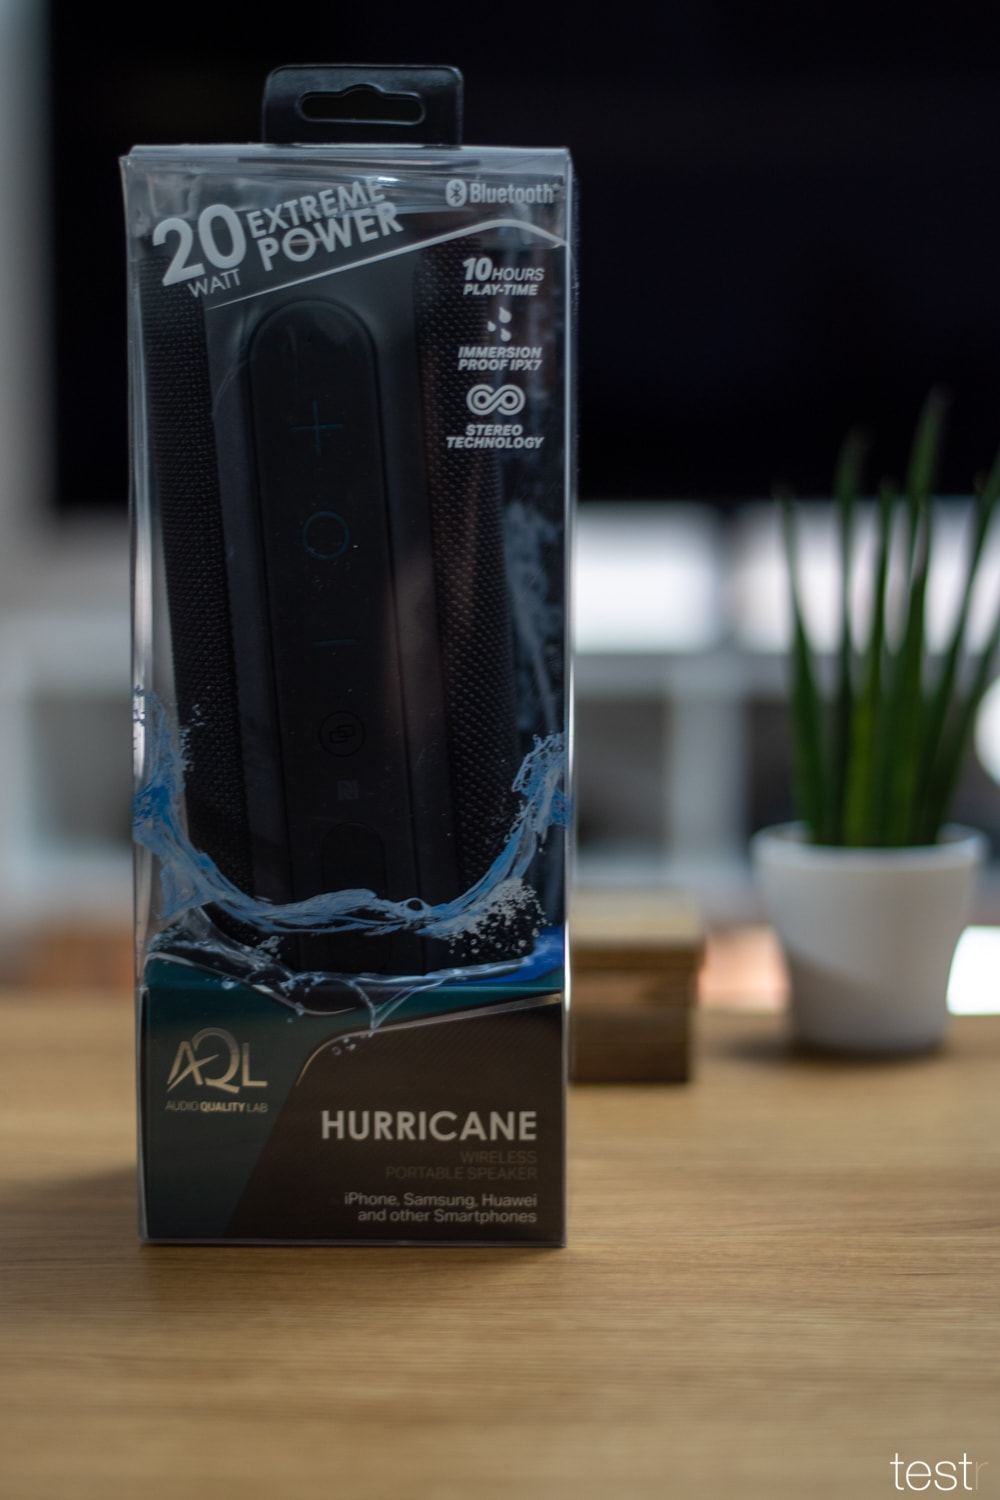 Cellularline AQL Hurricane 1 2